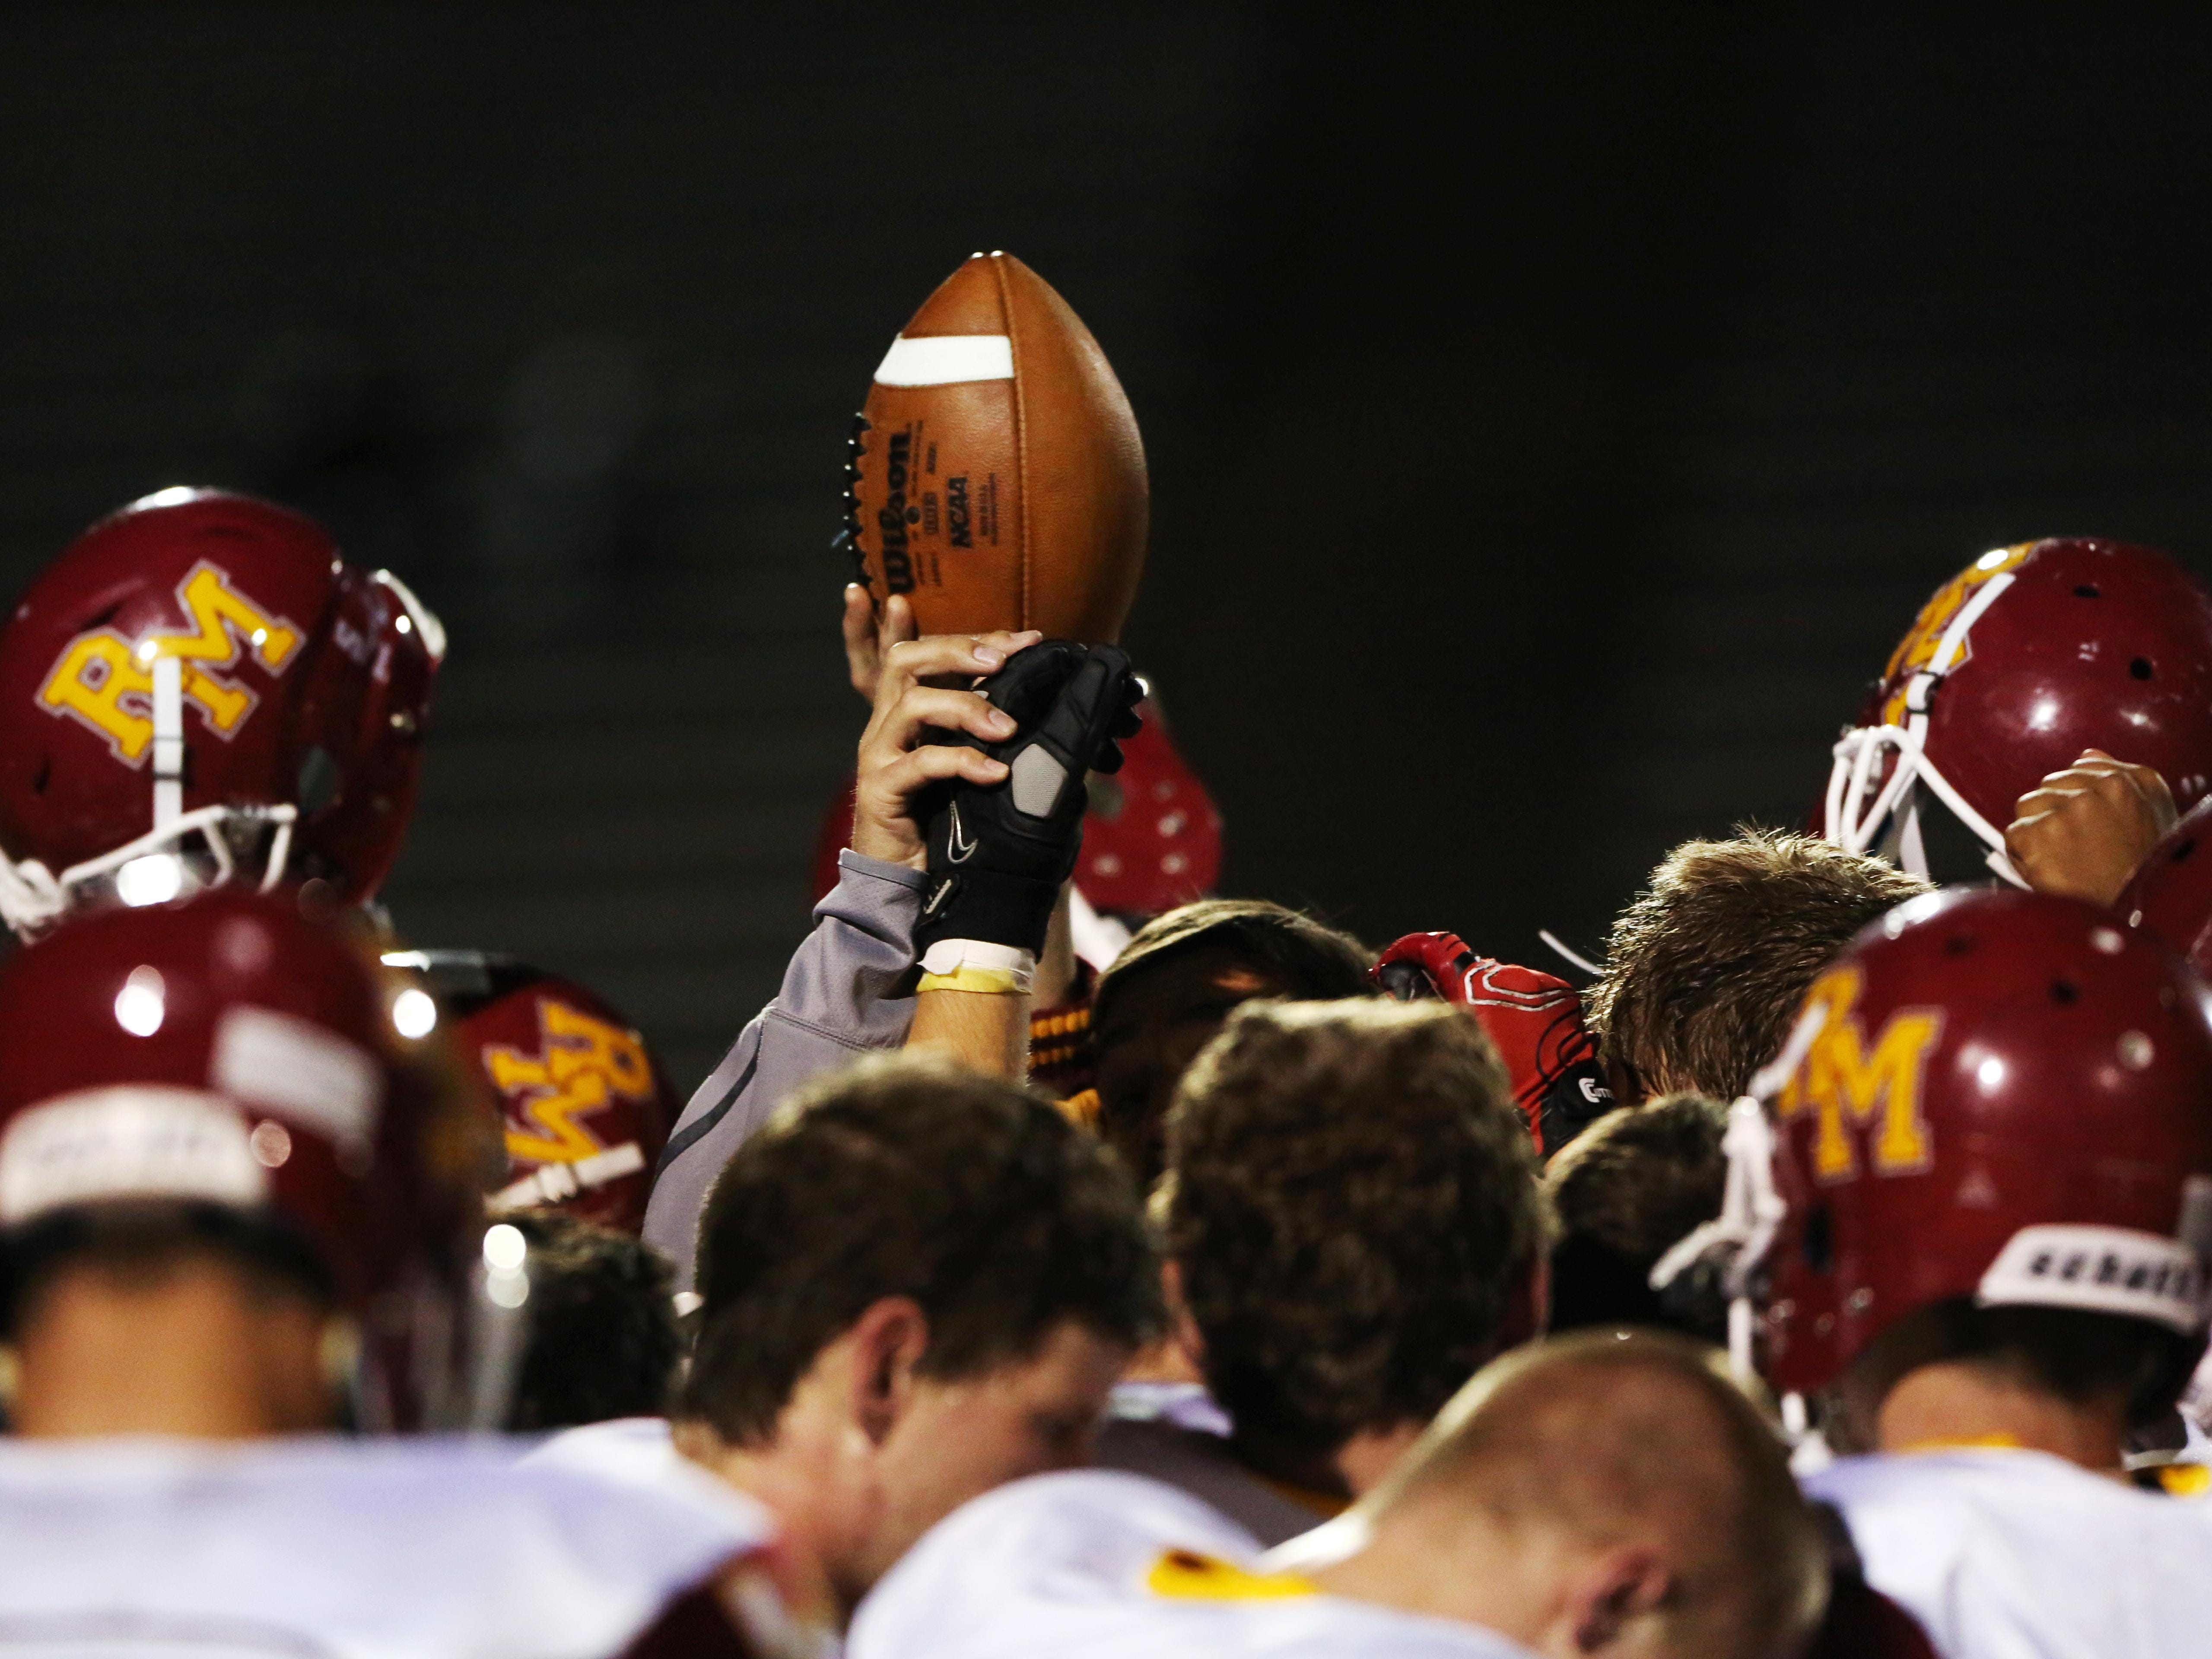 The Rocky Mountain football team hosts No. 9 Fairview at 7 p.m. Thursday.